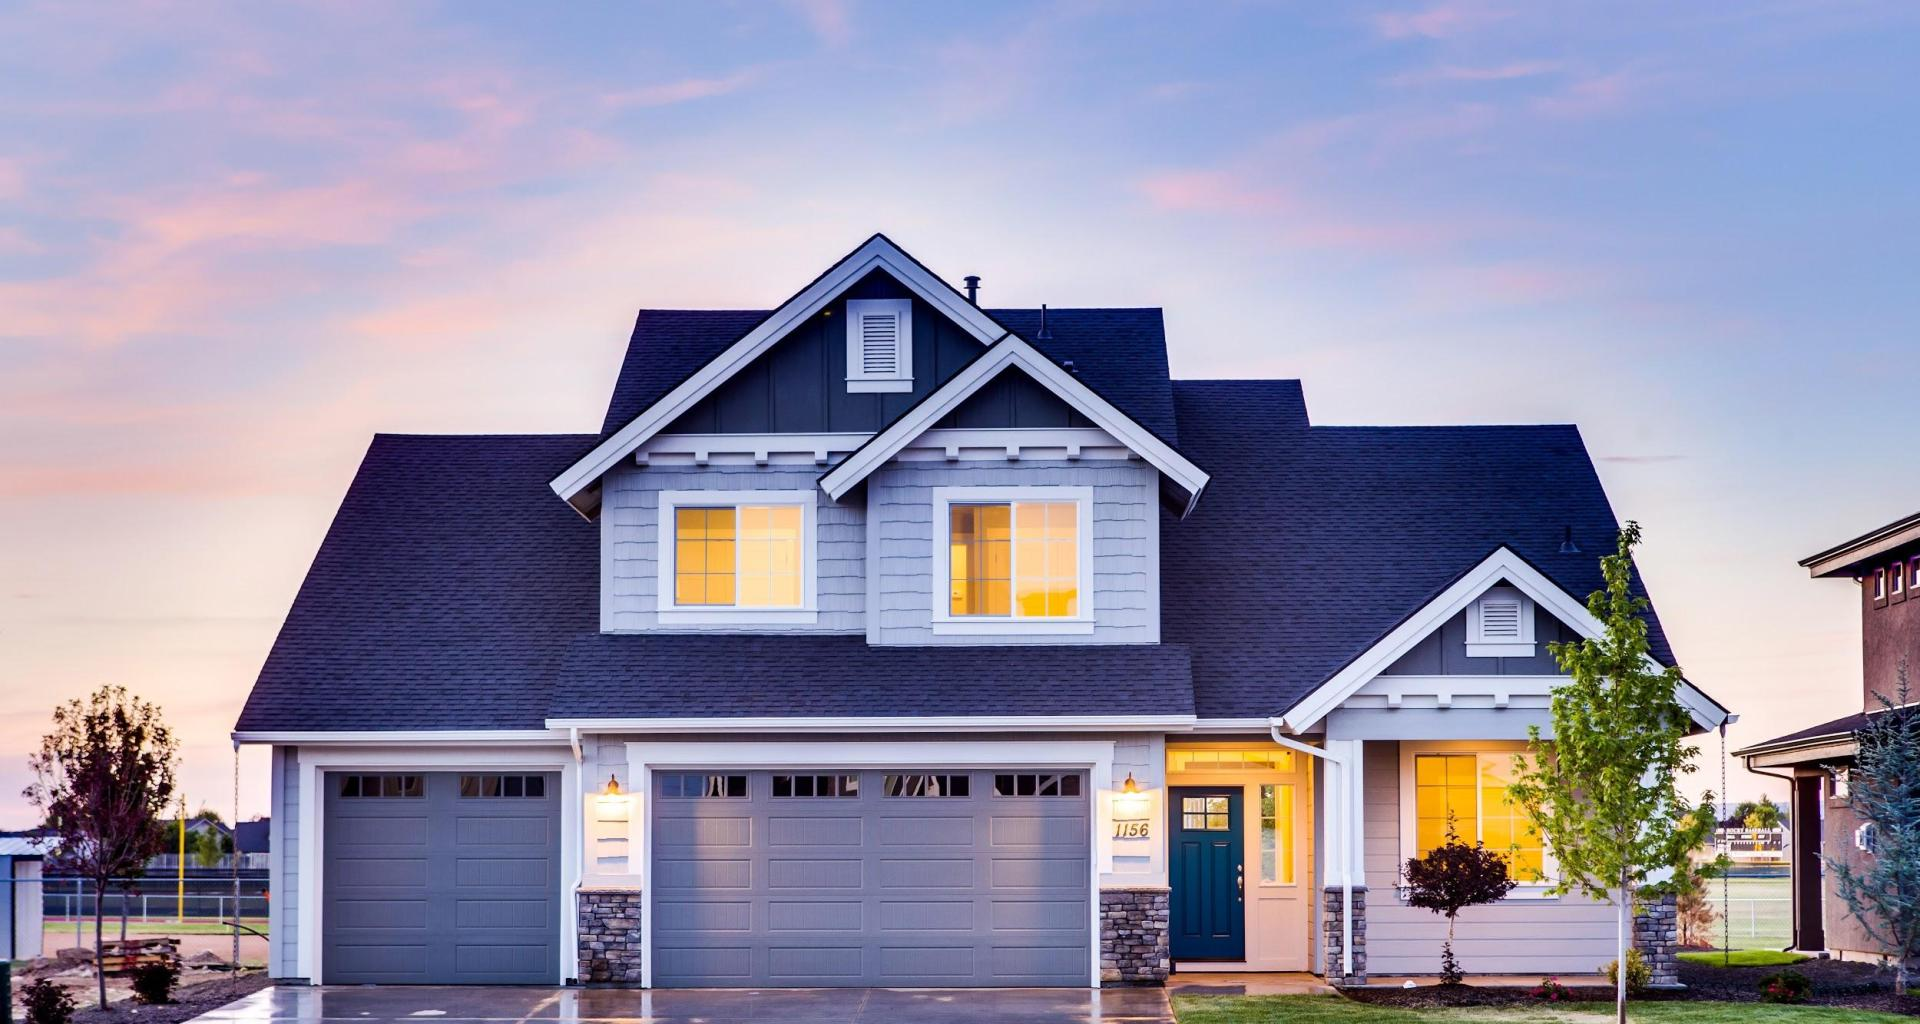 Steps for Earning your Real Estate License 1